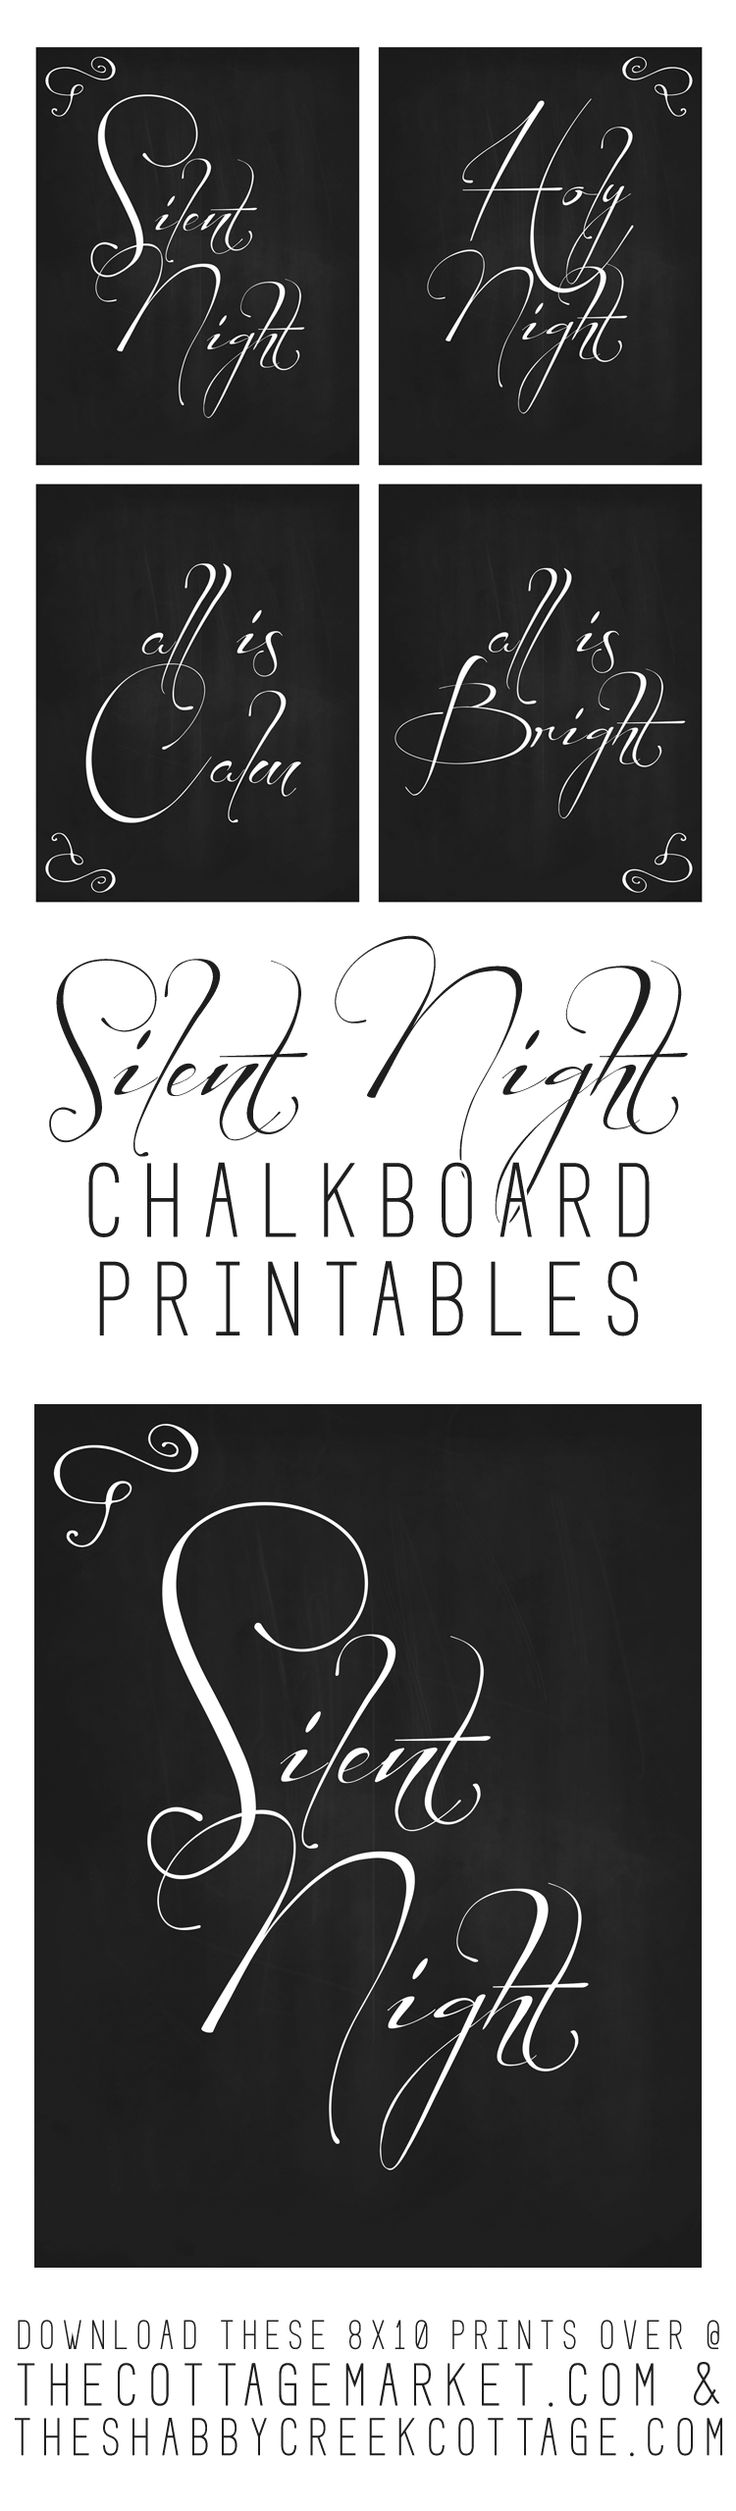 Free Christmas Printables | The Cottage Market